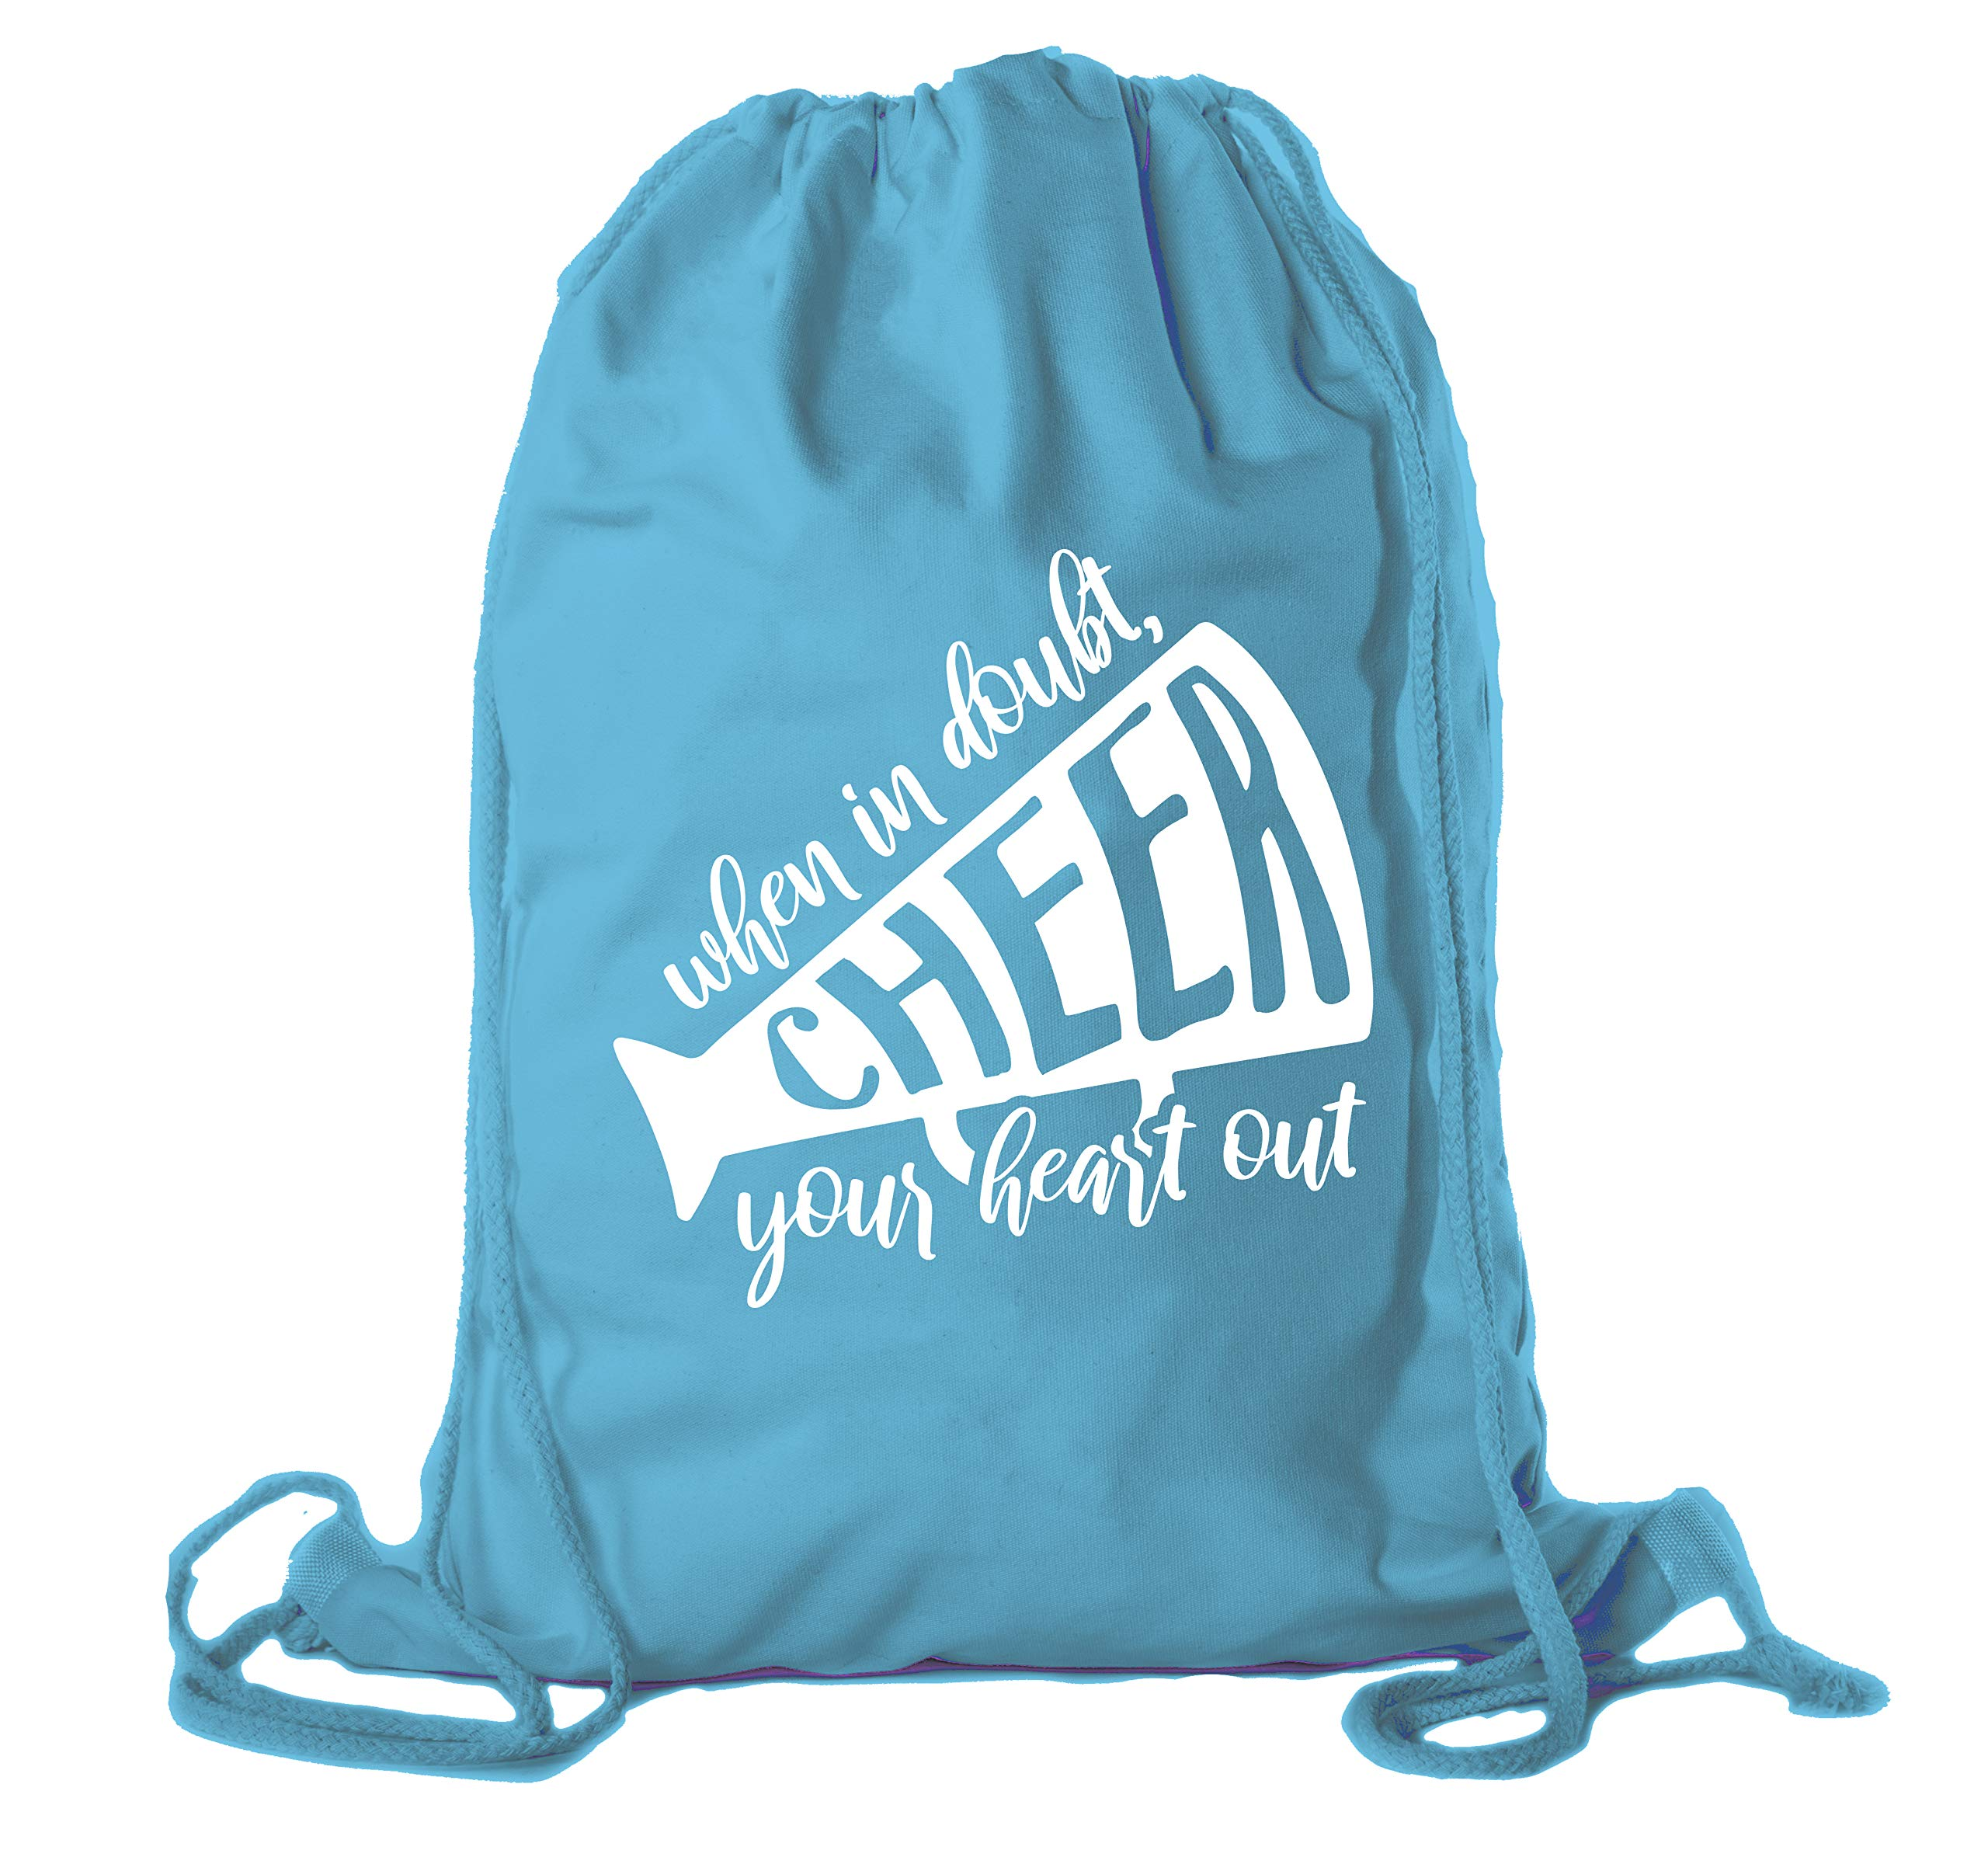 Cheerleading Backpacks, Cheer and Pom Drawstring Bags, Cheerleader Team Cinch Bags